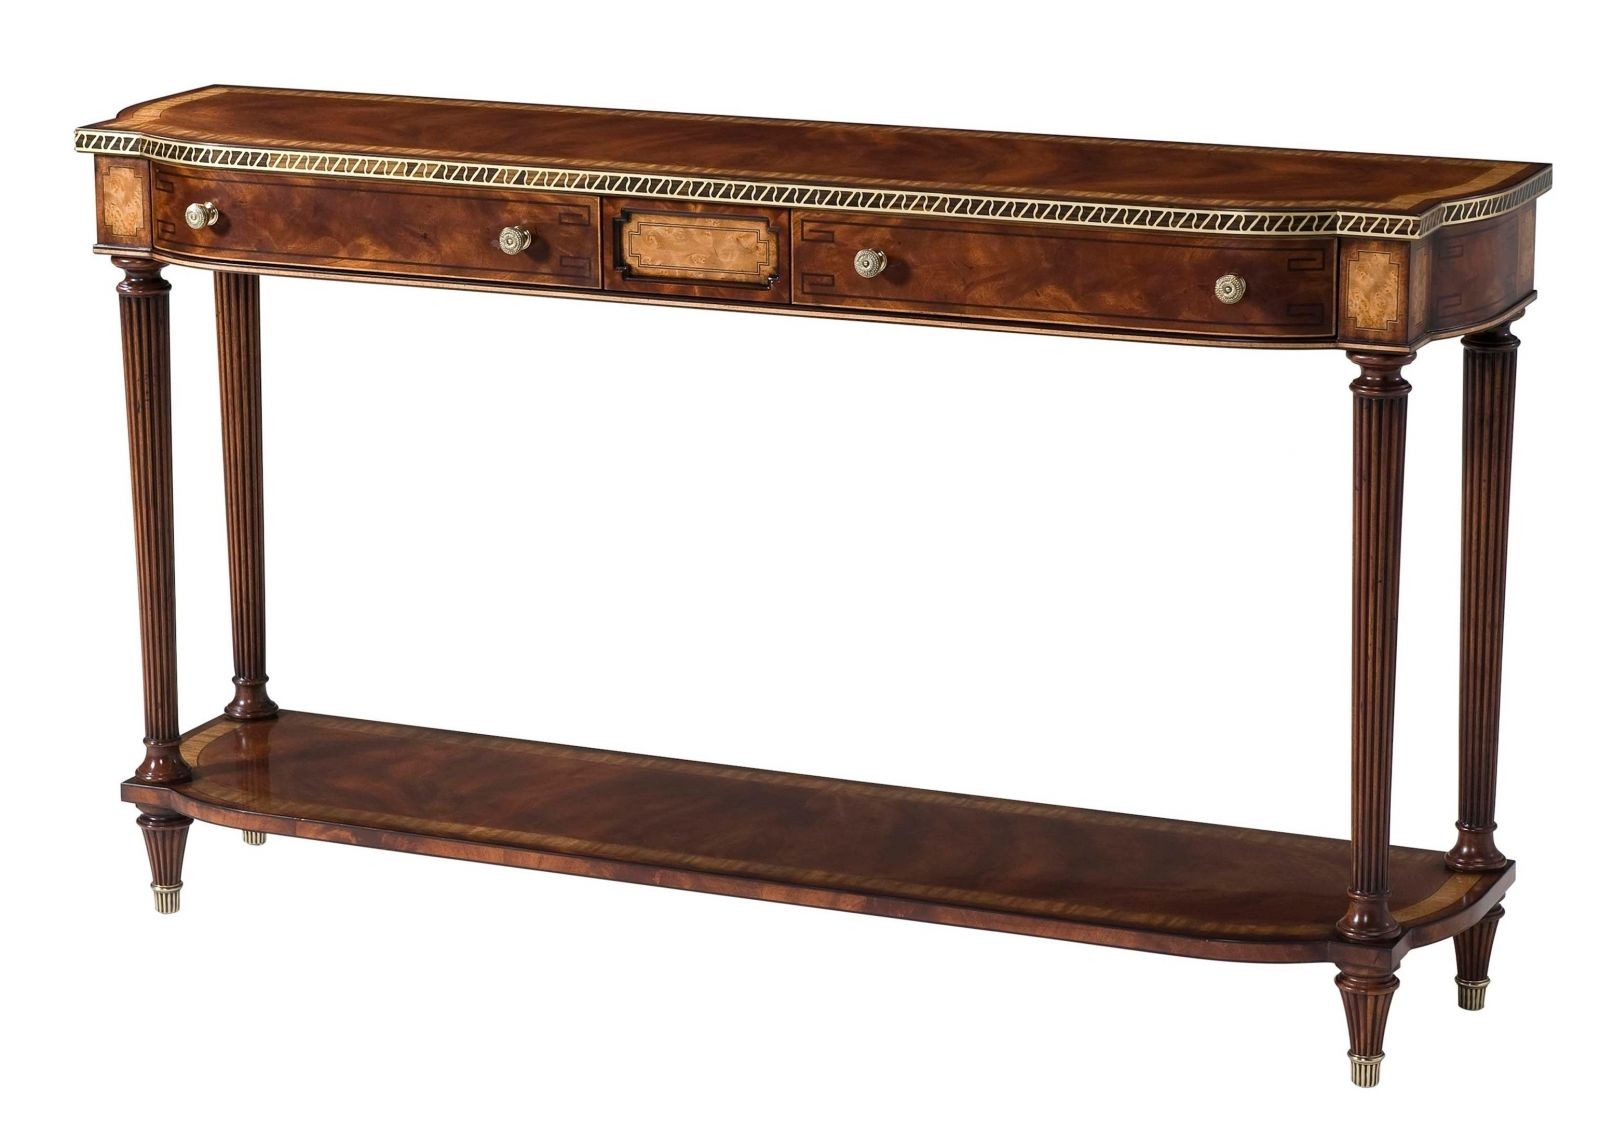 A mahogany veneered console table